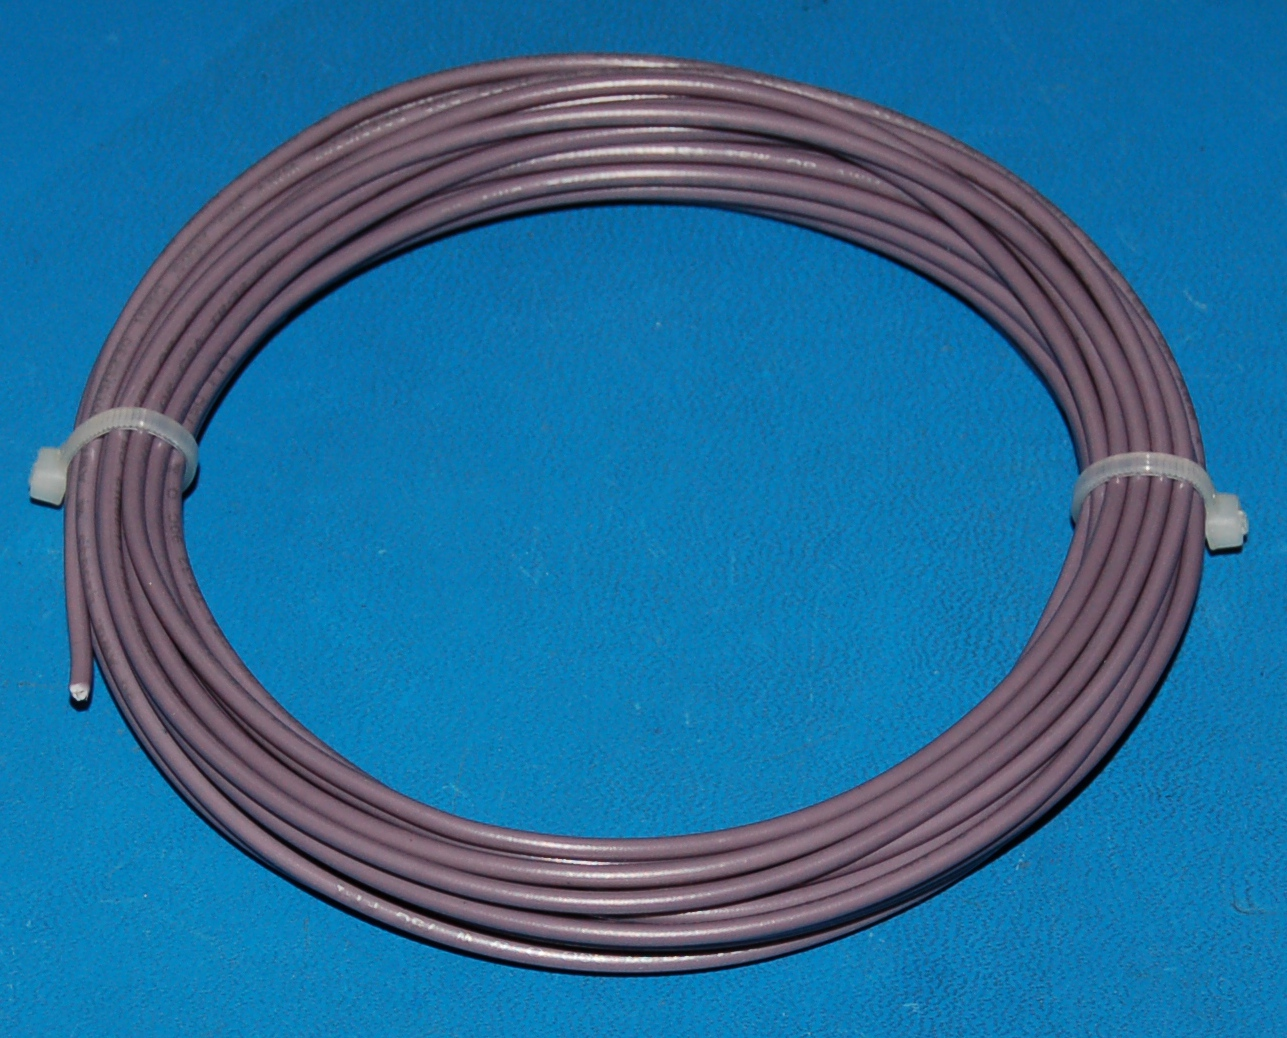 Solid Tinned Copper Wire, 600V, #20 AWG x 25' (Gray)